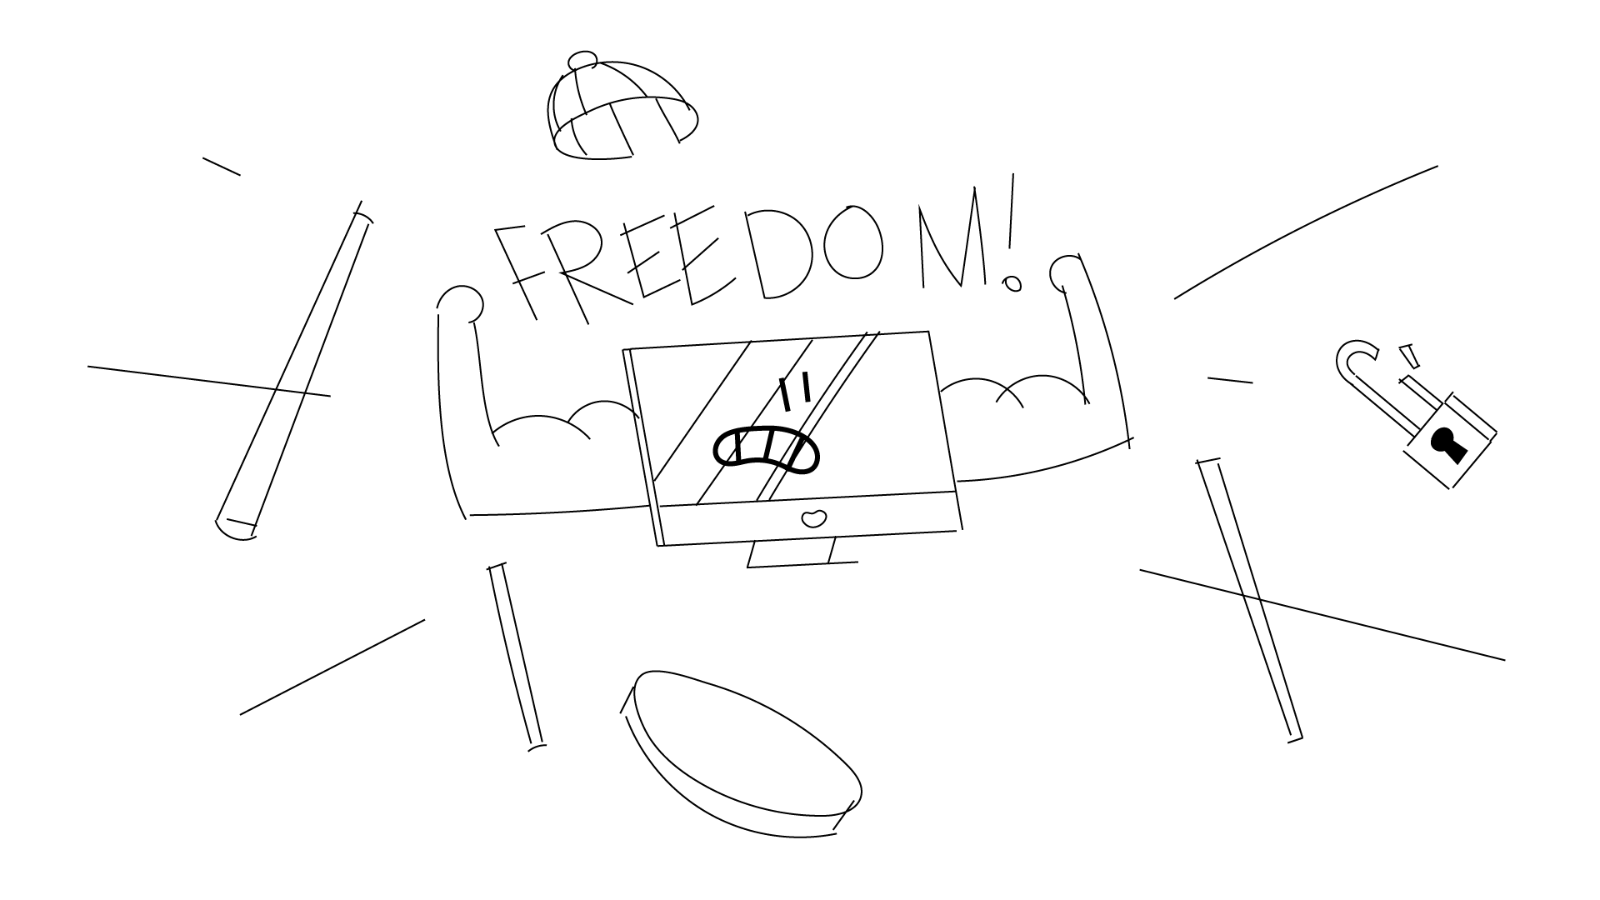 Sketch for a video about Open Source, by Iluli. It shows a computer breaking from a cage and the word